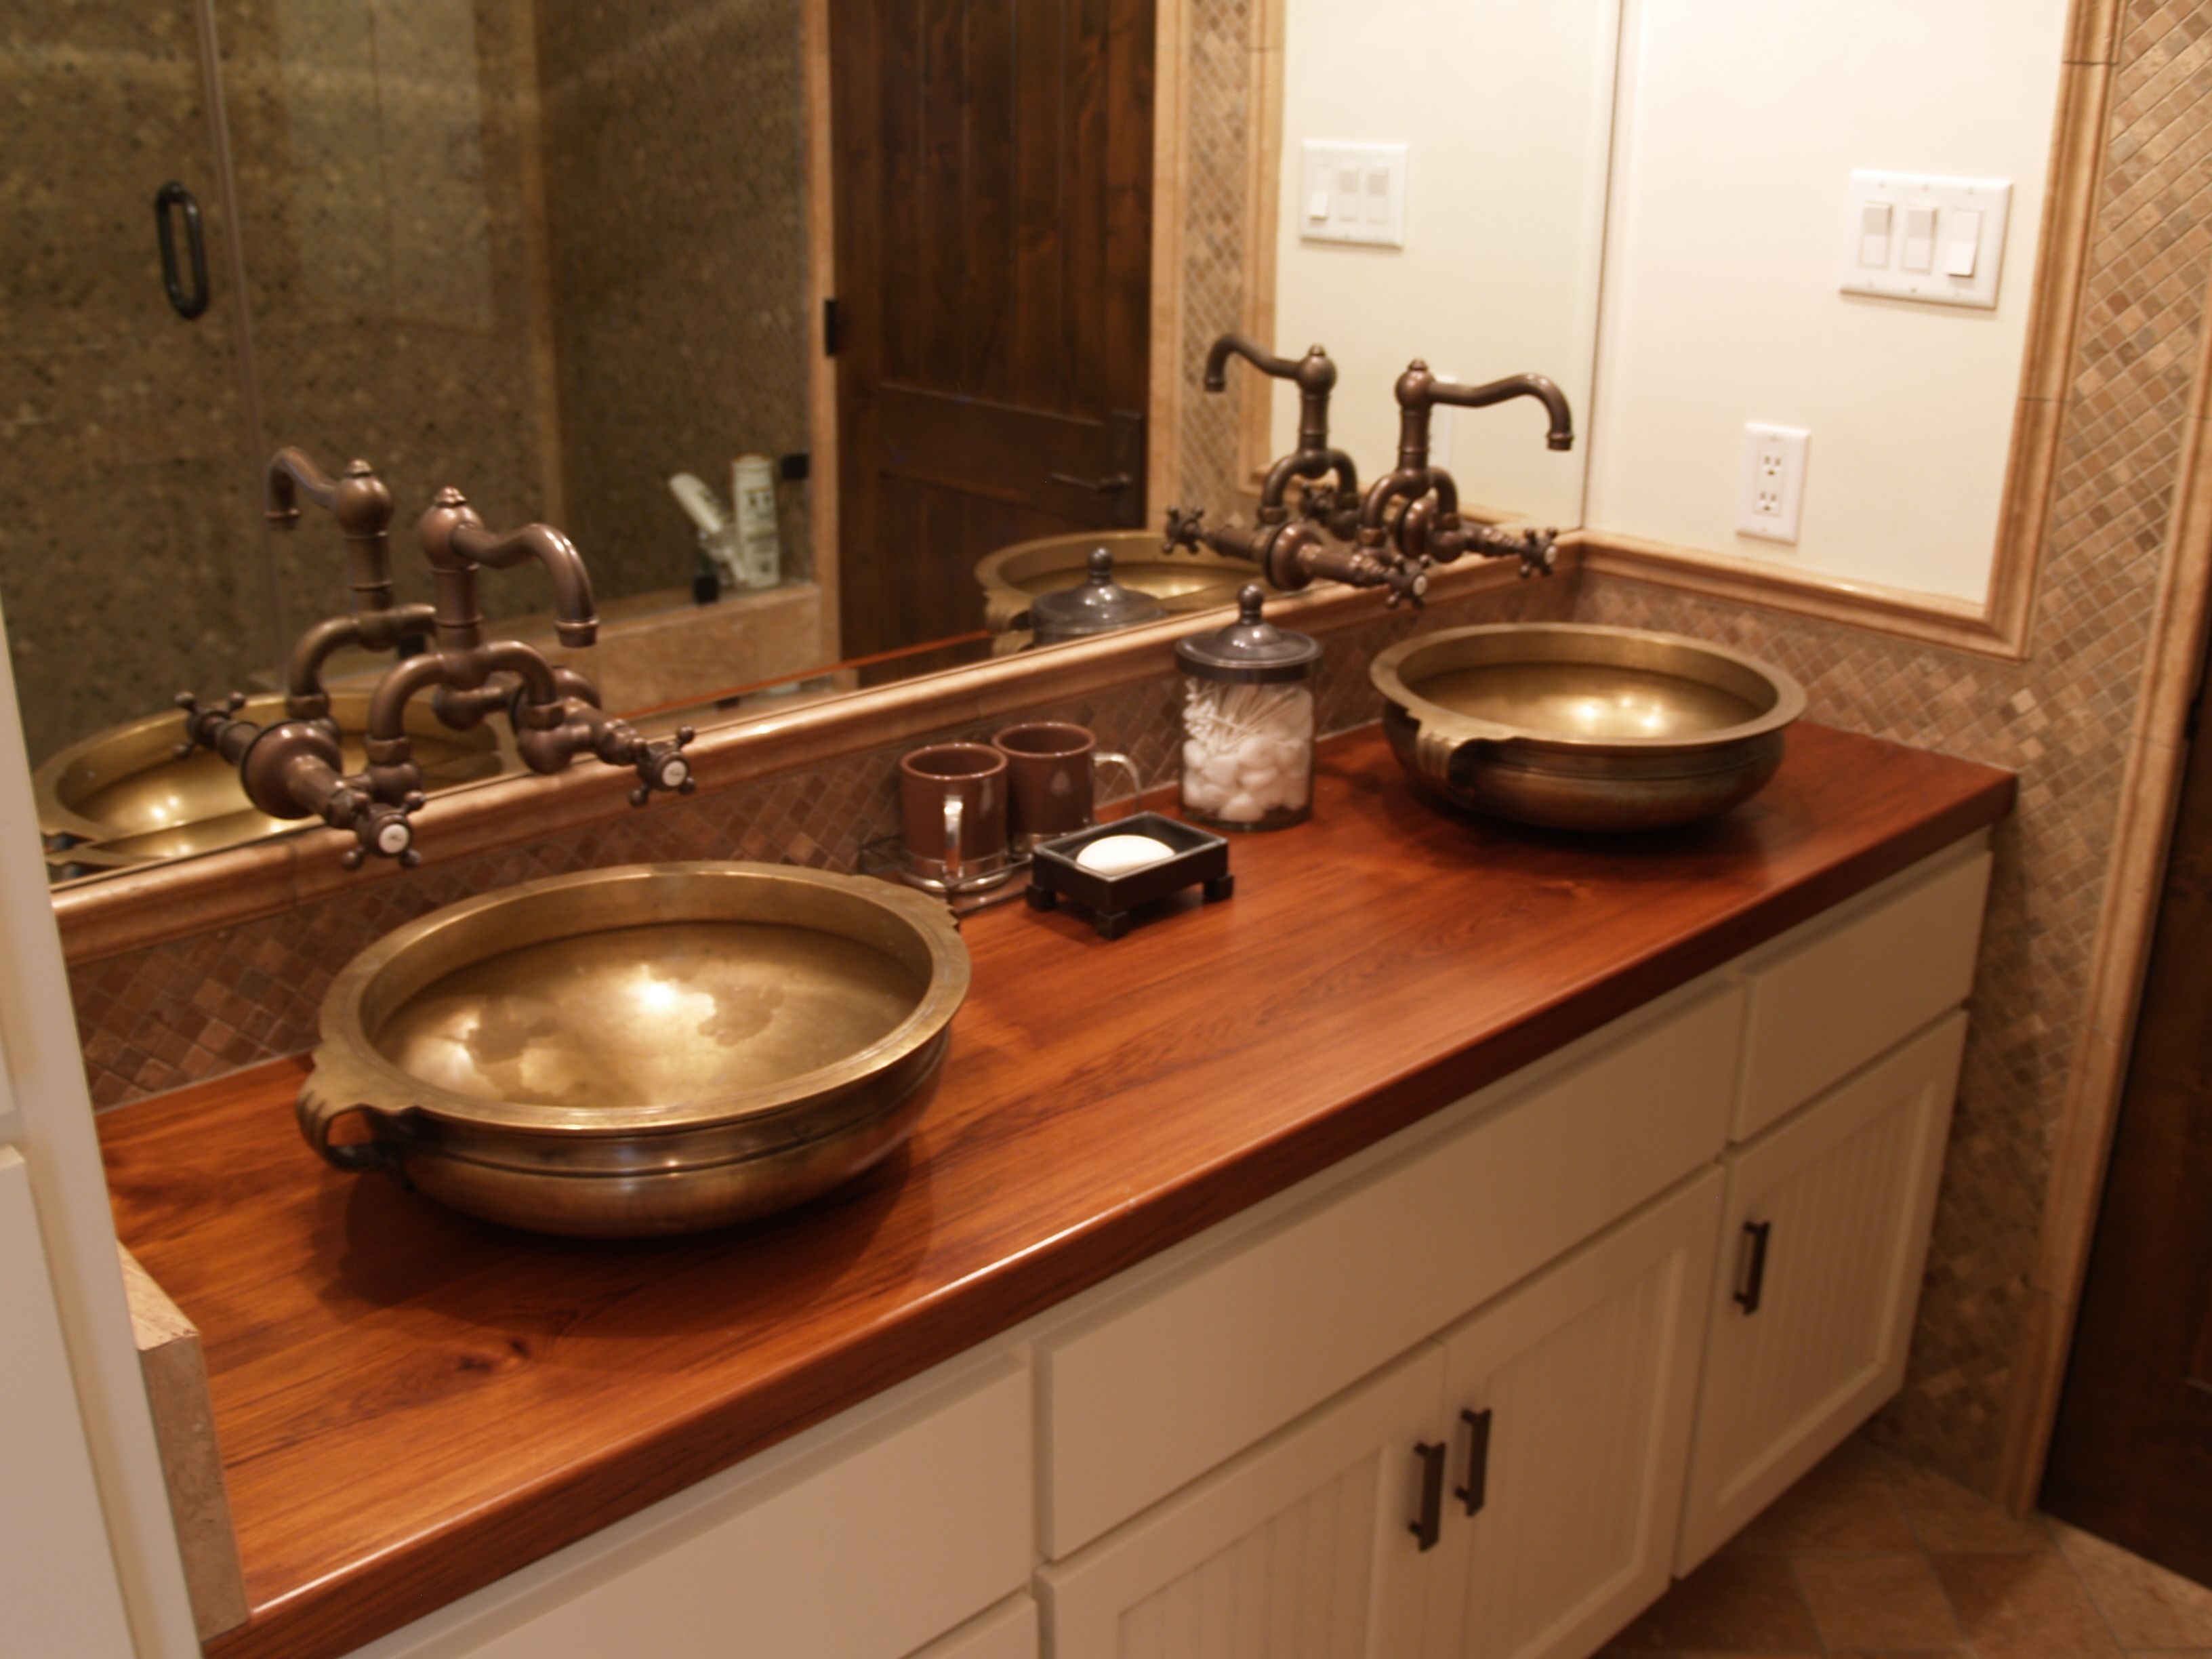 Custom Solid Wood Face Grain Teak Counter Top With Two Vessel